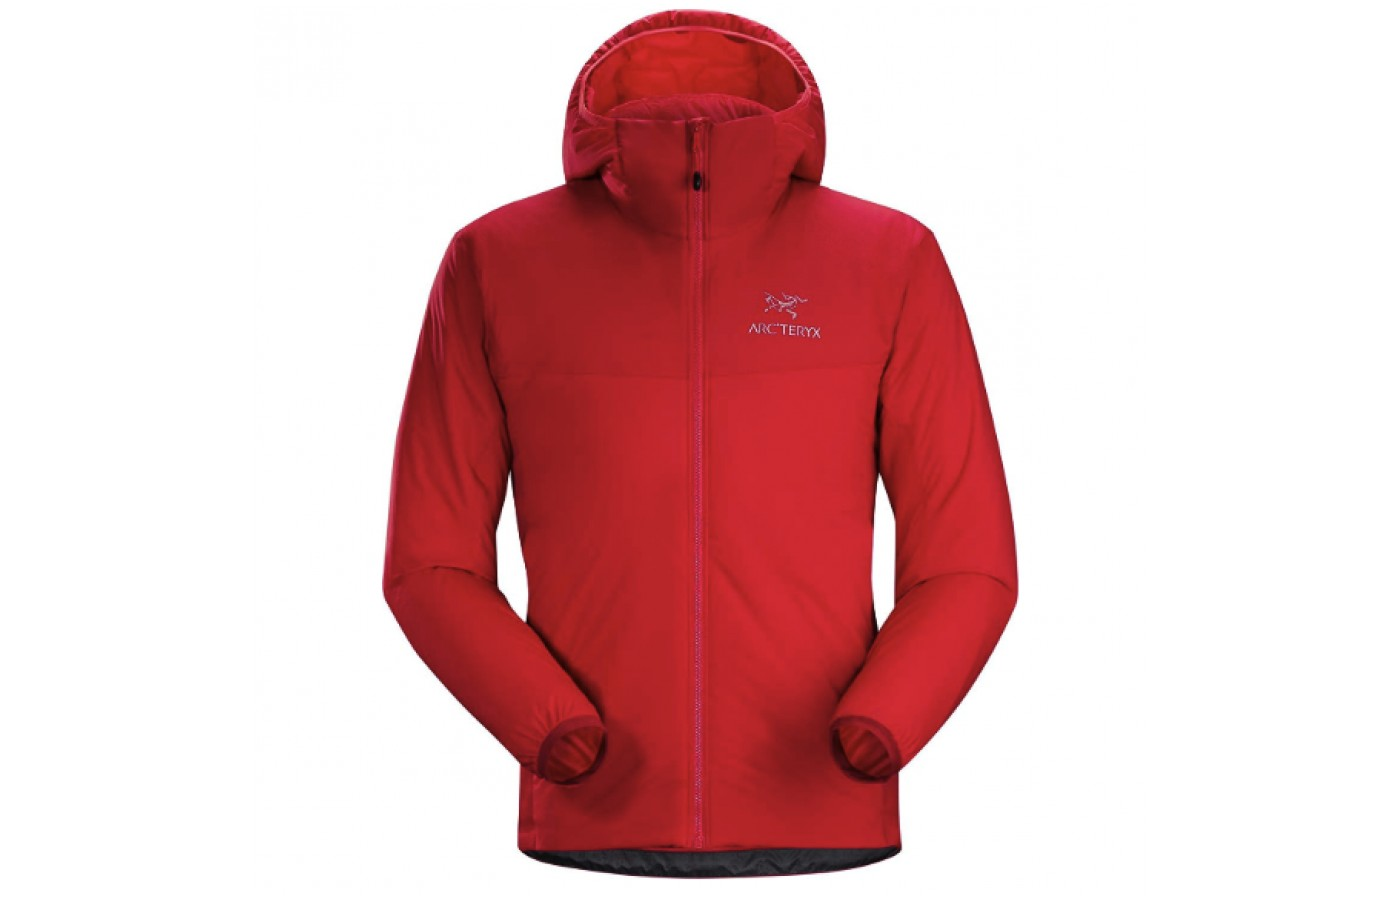 Lightweight wind resistant material offers superior warmth and protection.